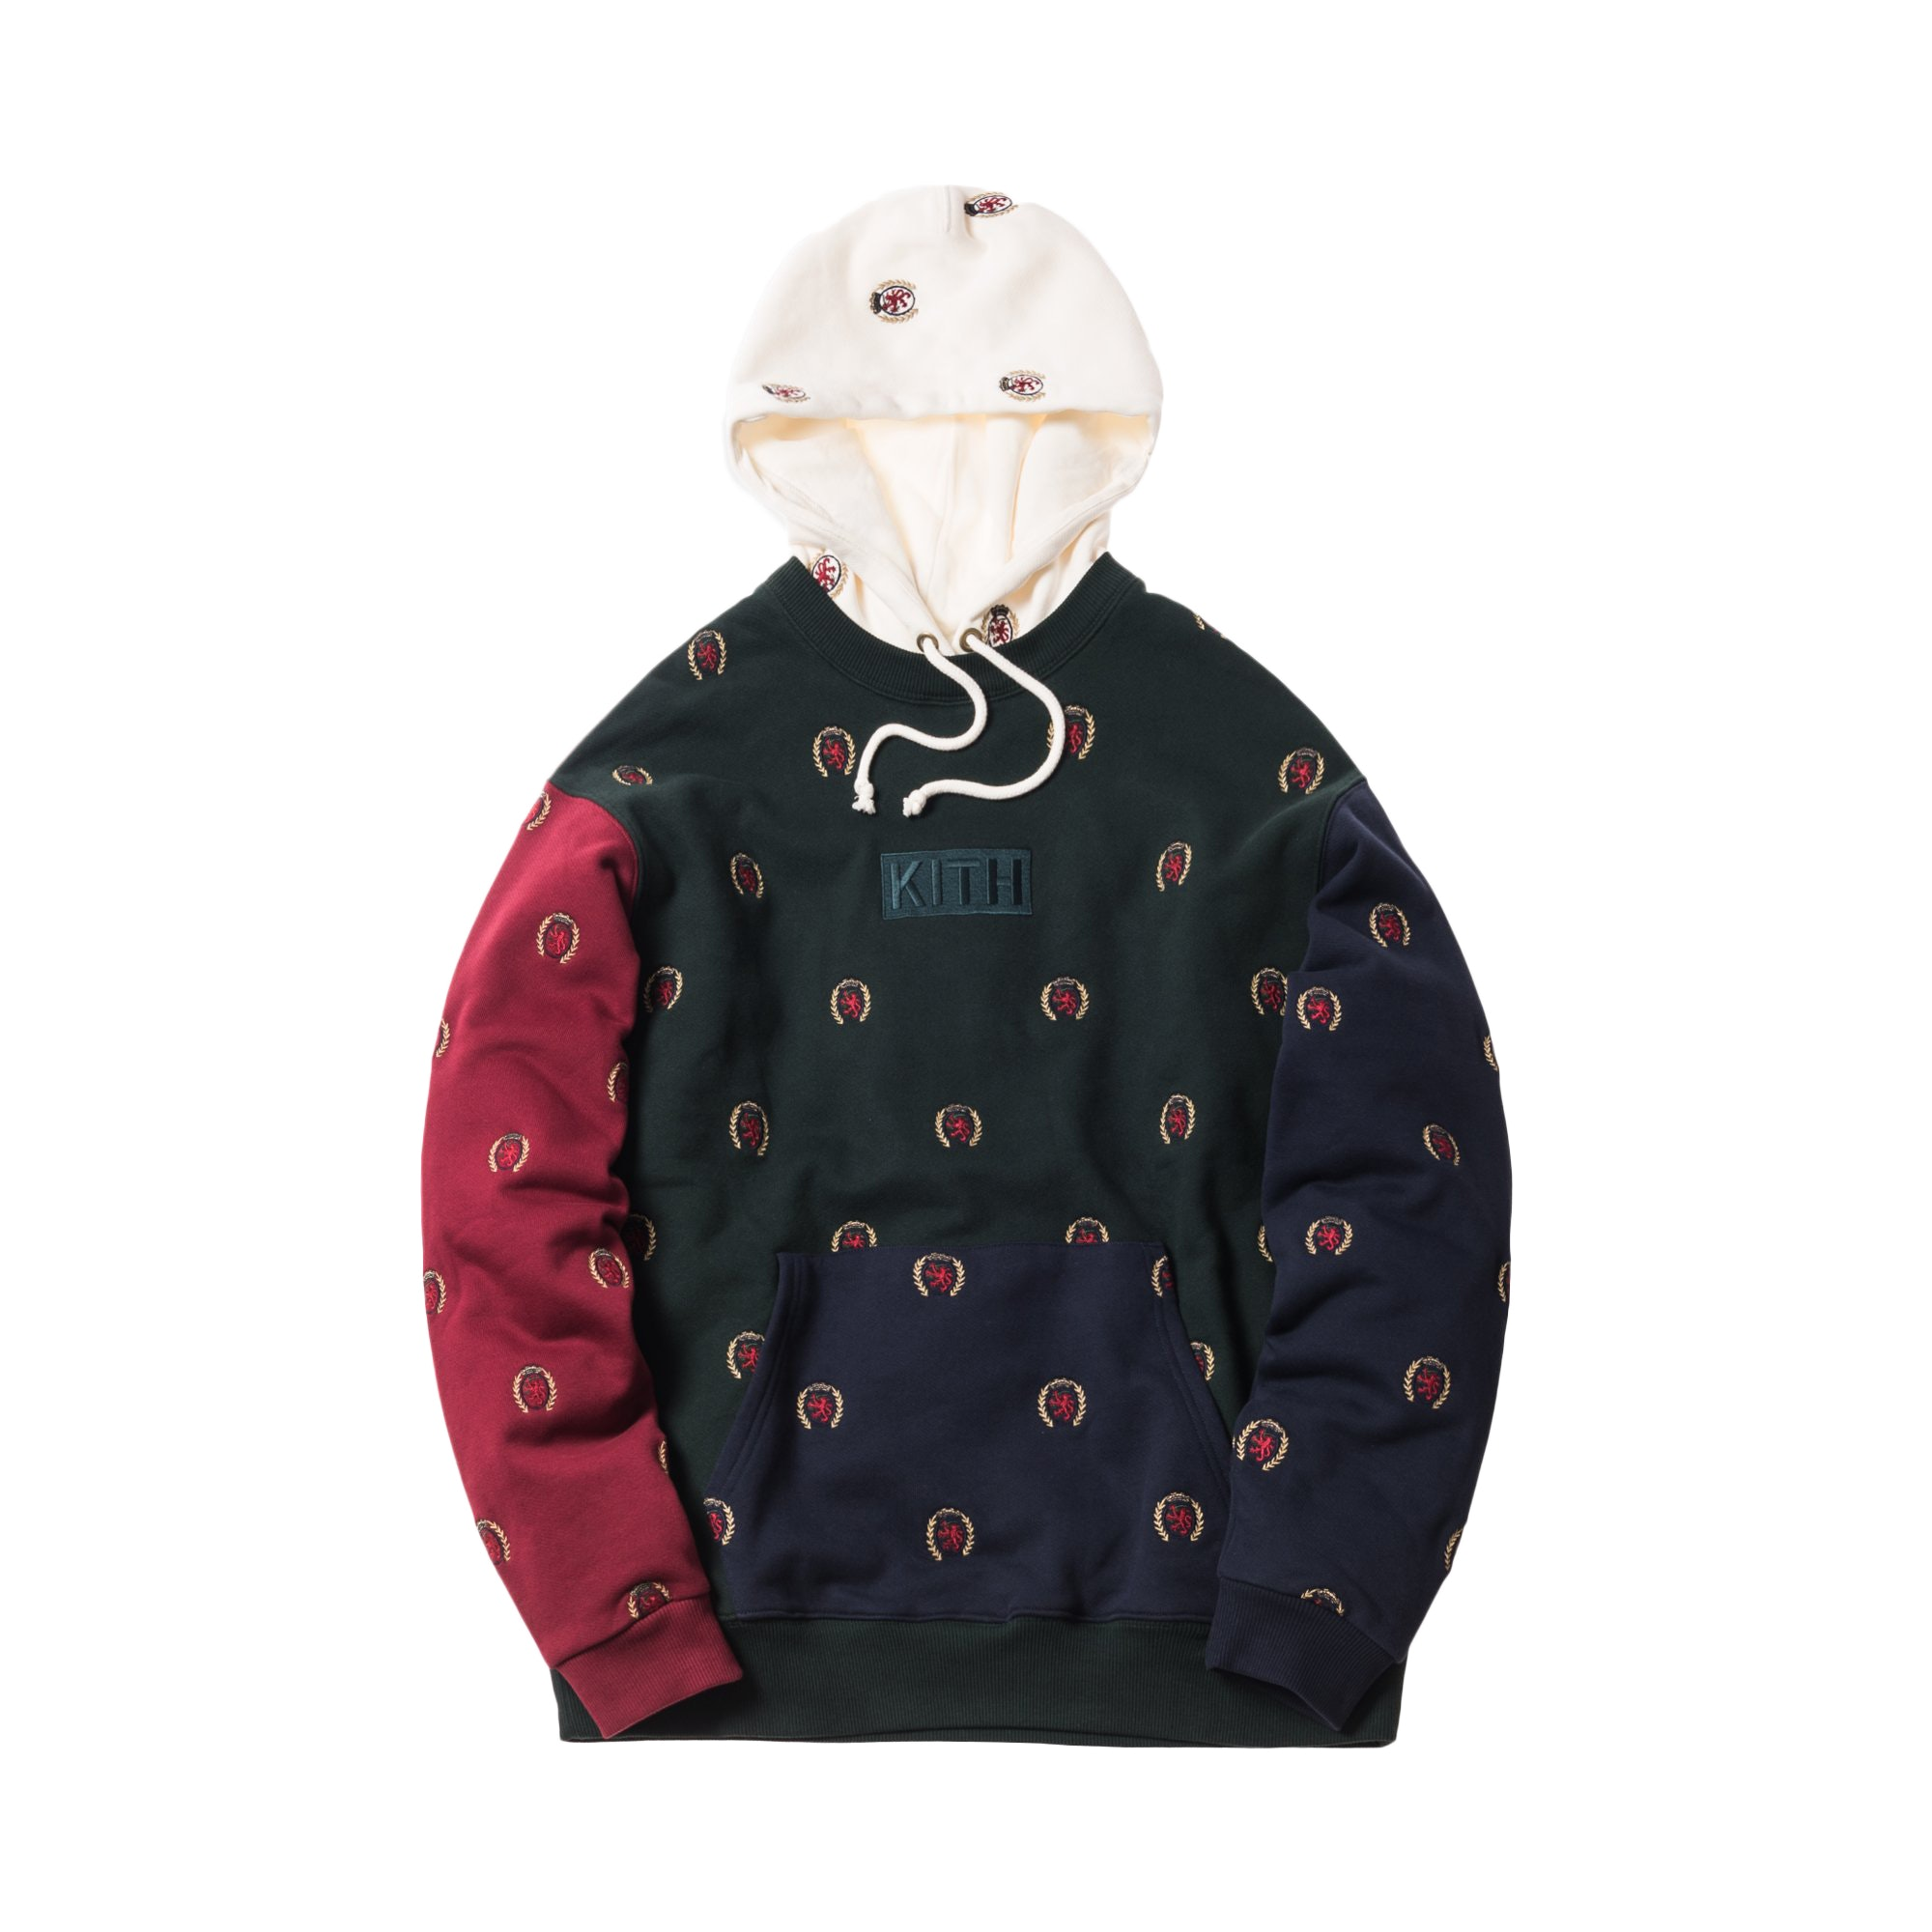 Kith x Tommy Hilfiger Full Embroidered Crest Hoodie Multi